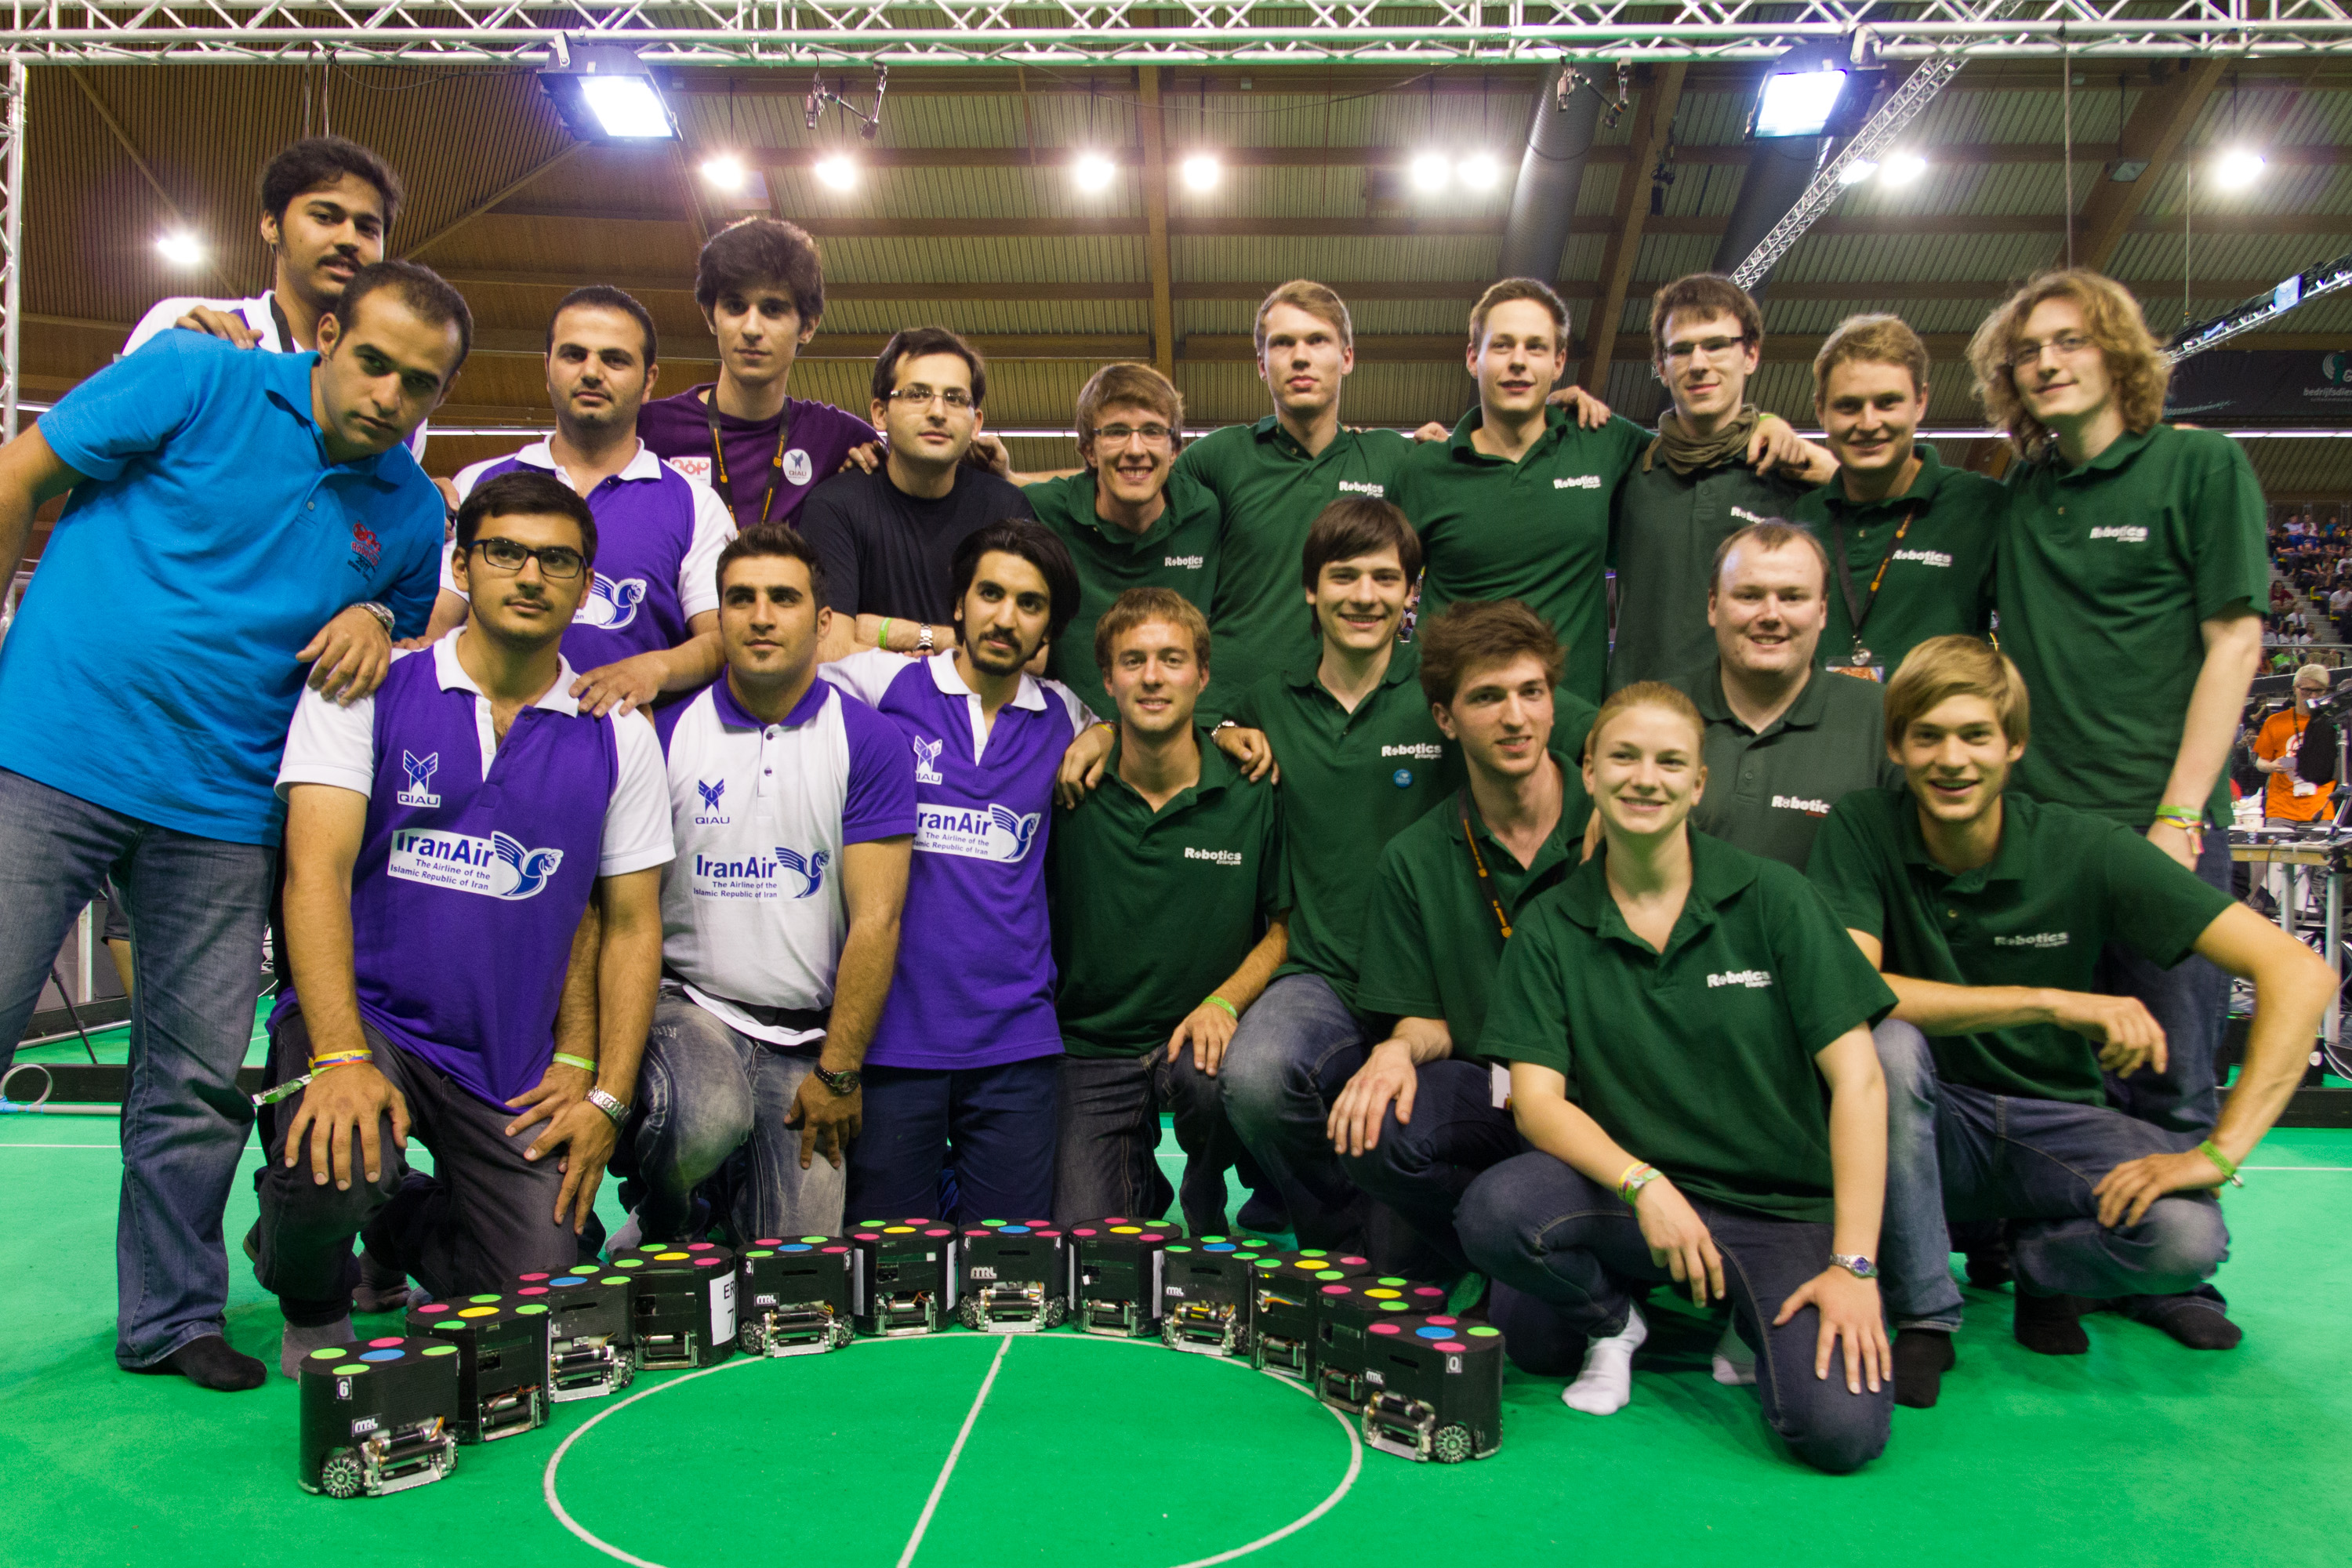 2013-06-24_robocup_2013_eindhoven_mb_0310